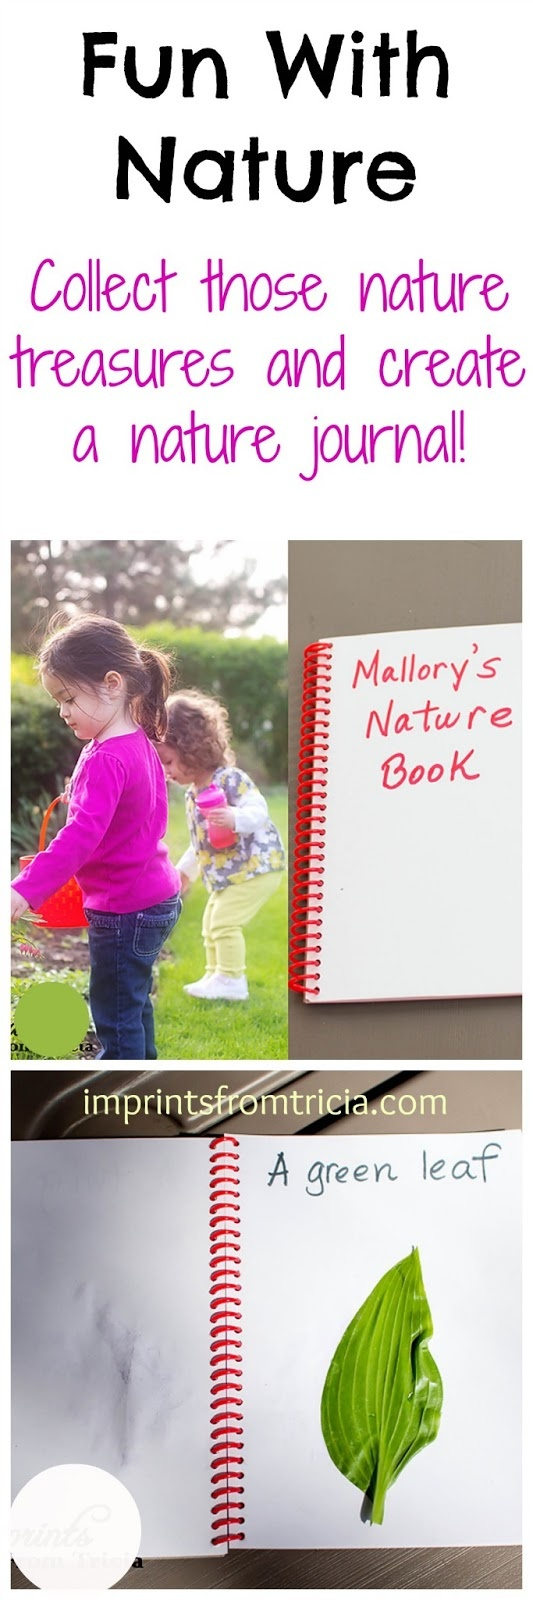 Tips for Creating Nature Journals with Kids.